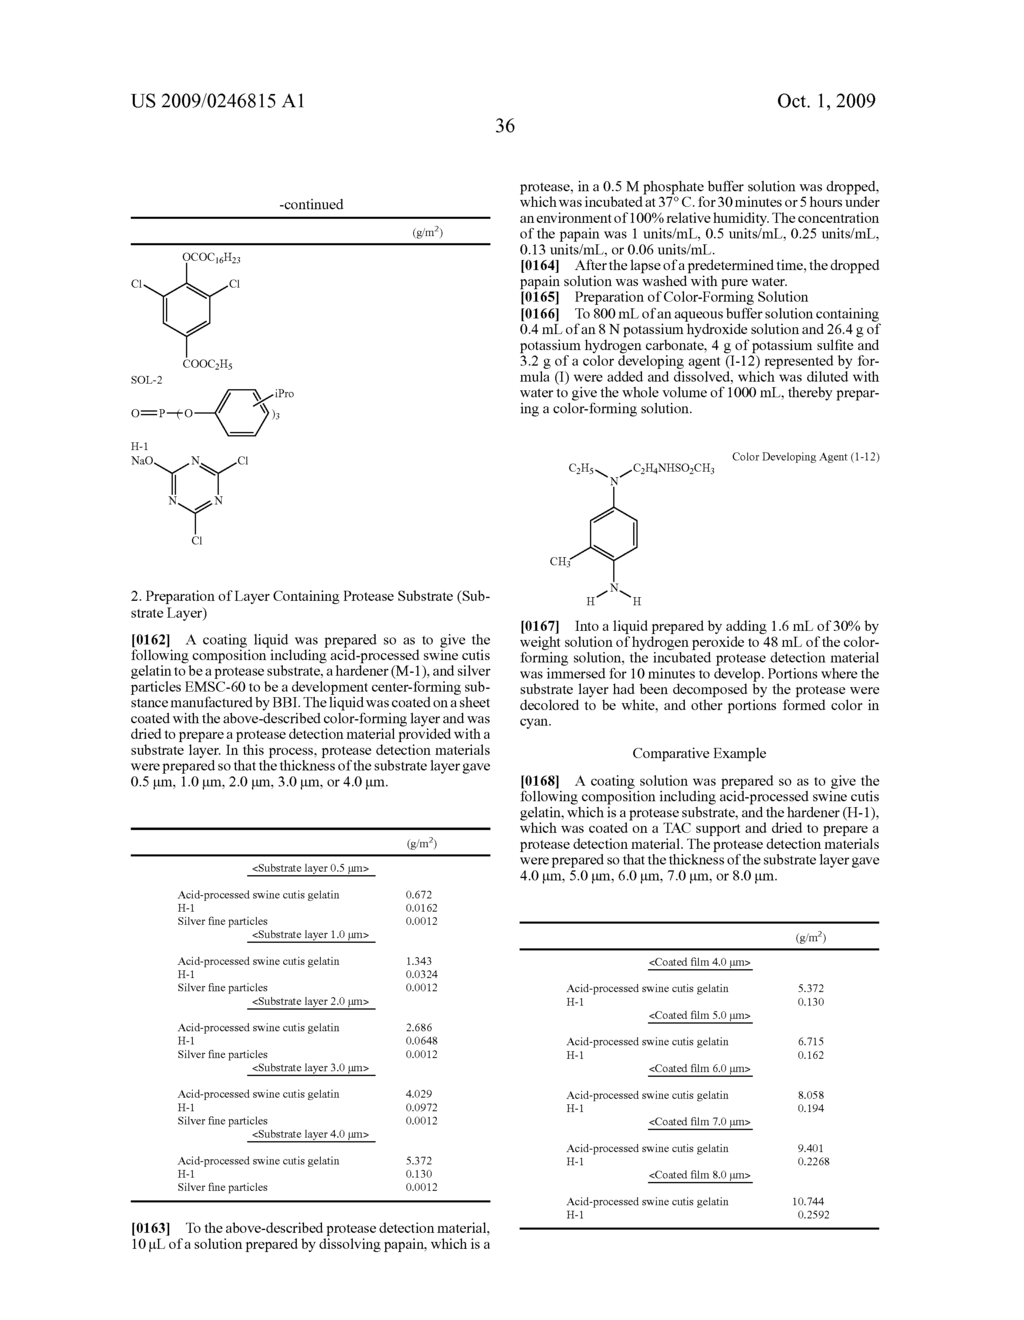 PROTEASE DETECTION MATERIAL, SET OF PROTEASE DETECTION MATERIALS, AND METHOD FOR MEASURING PROTEASE - diagram, schematic, and image 37